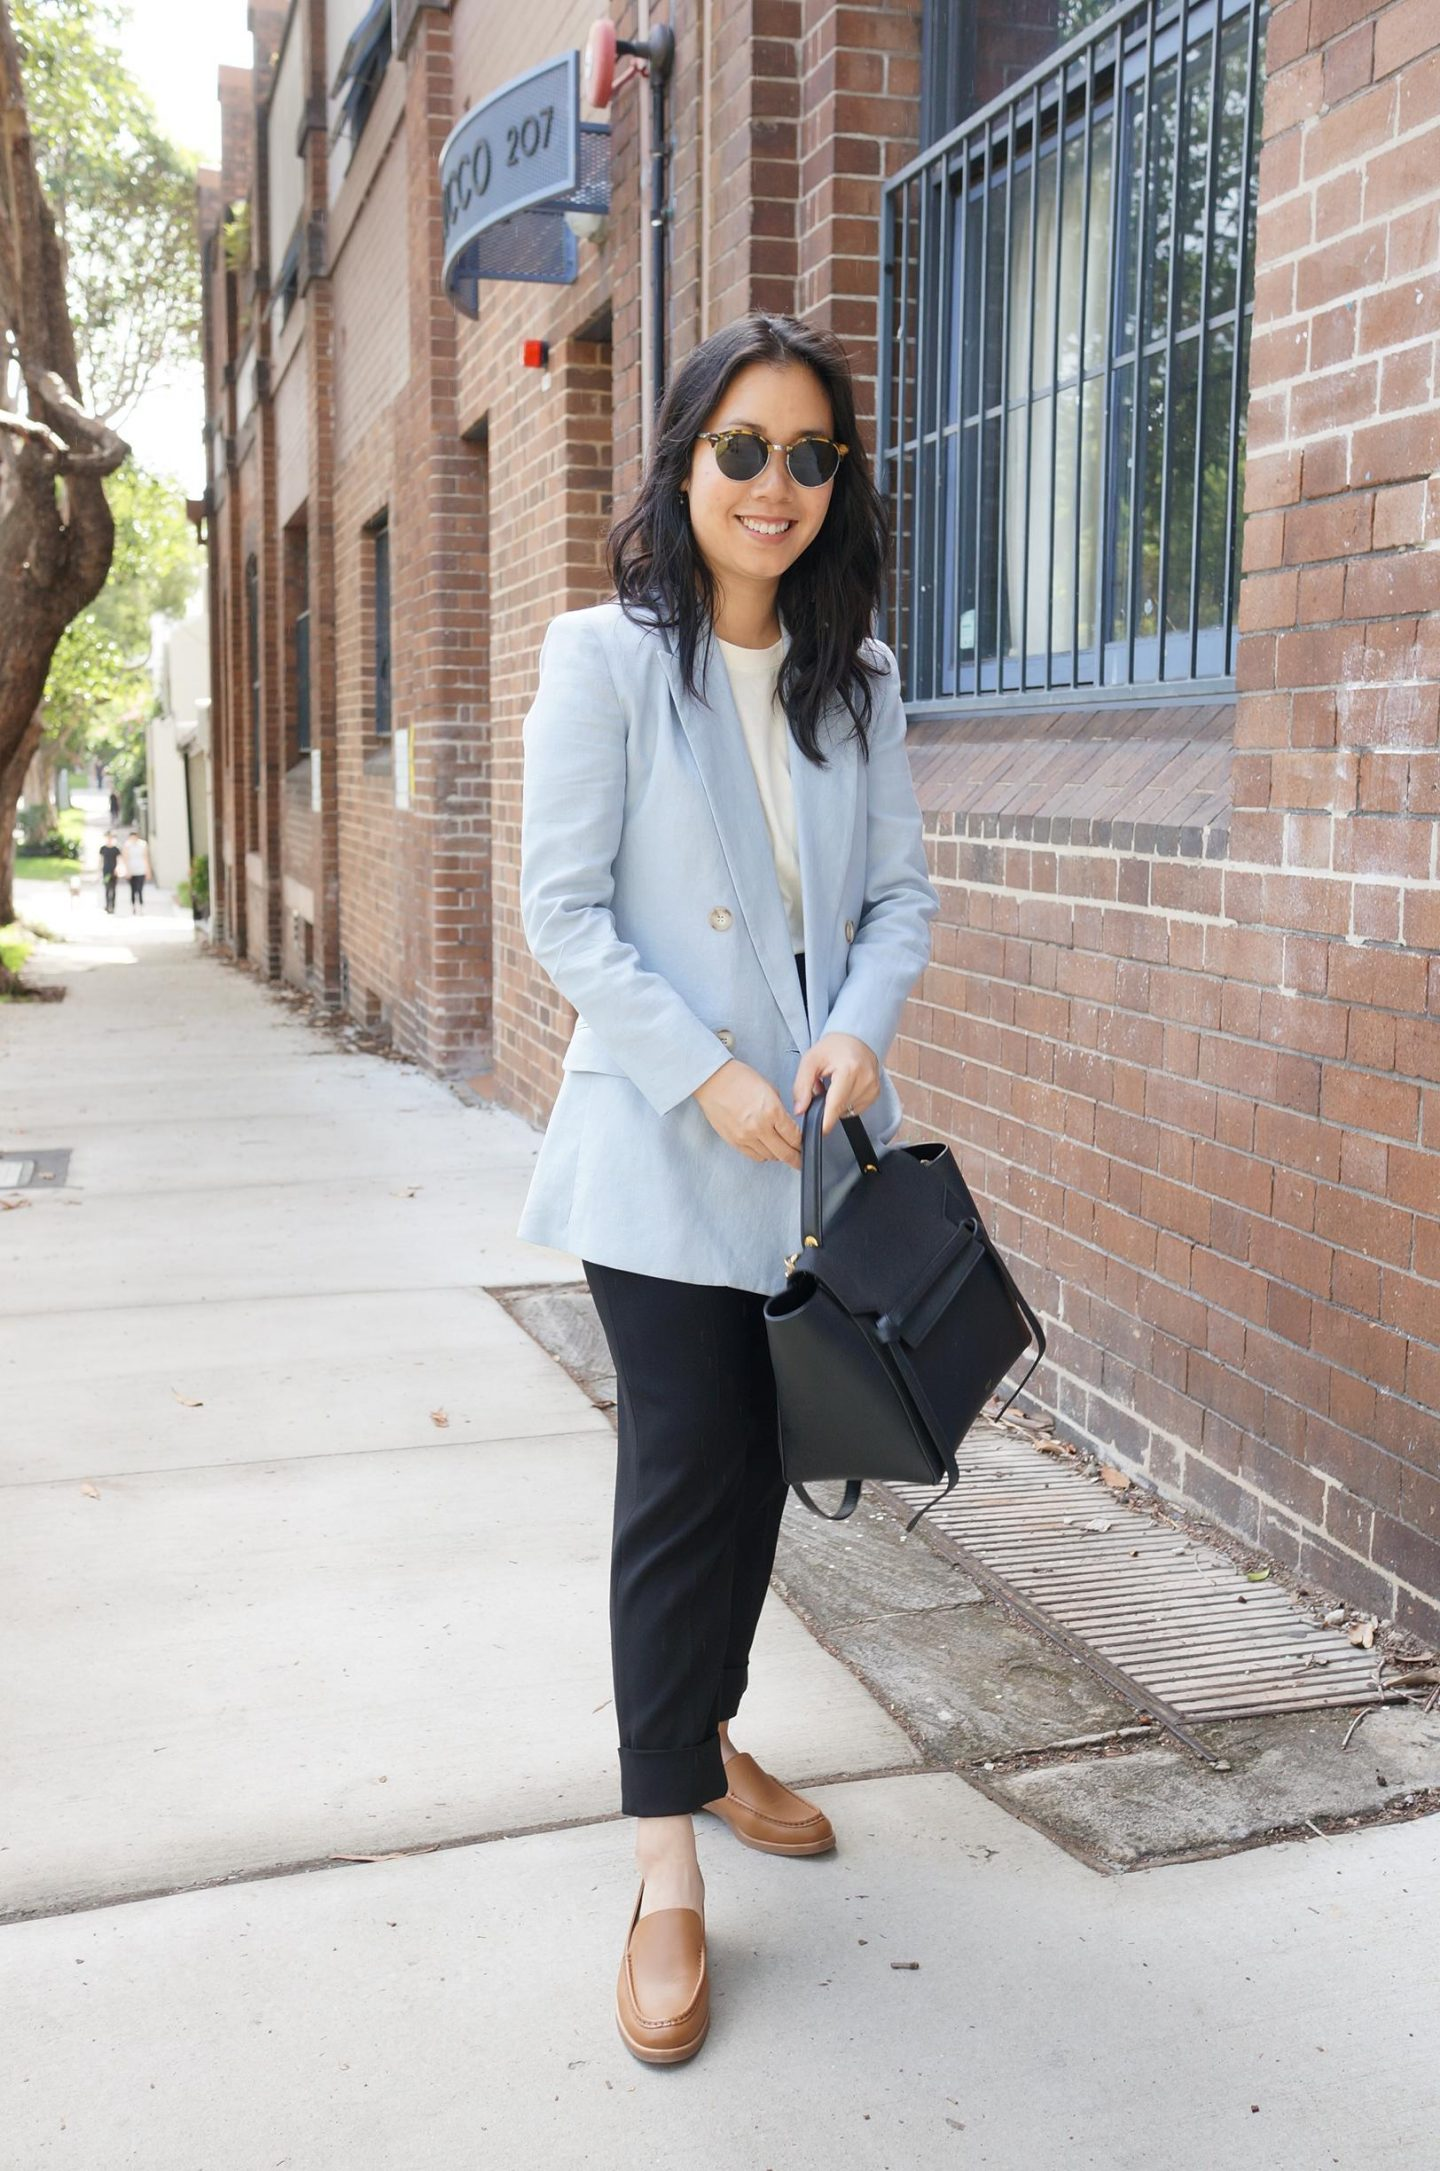 woman wearing light blue blazer and everlane modern loafers in camel featured in blog post about review